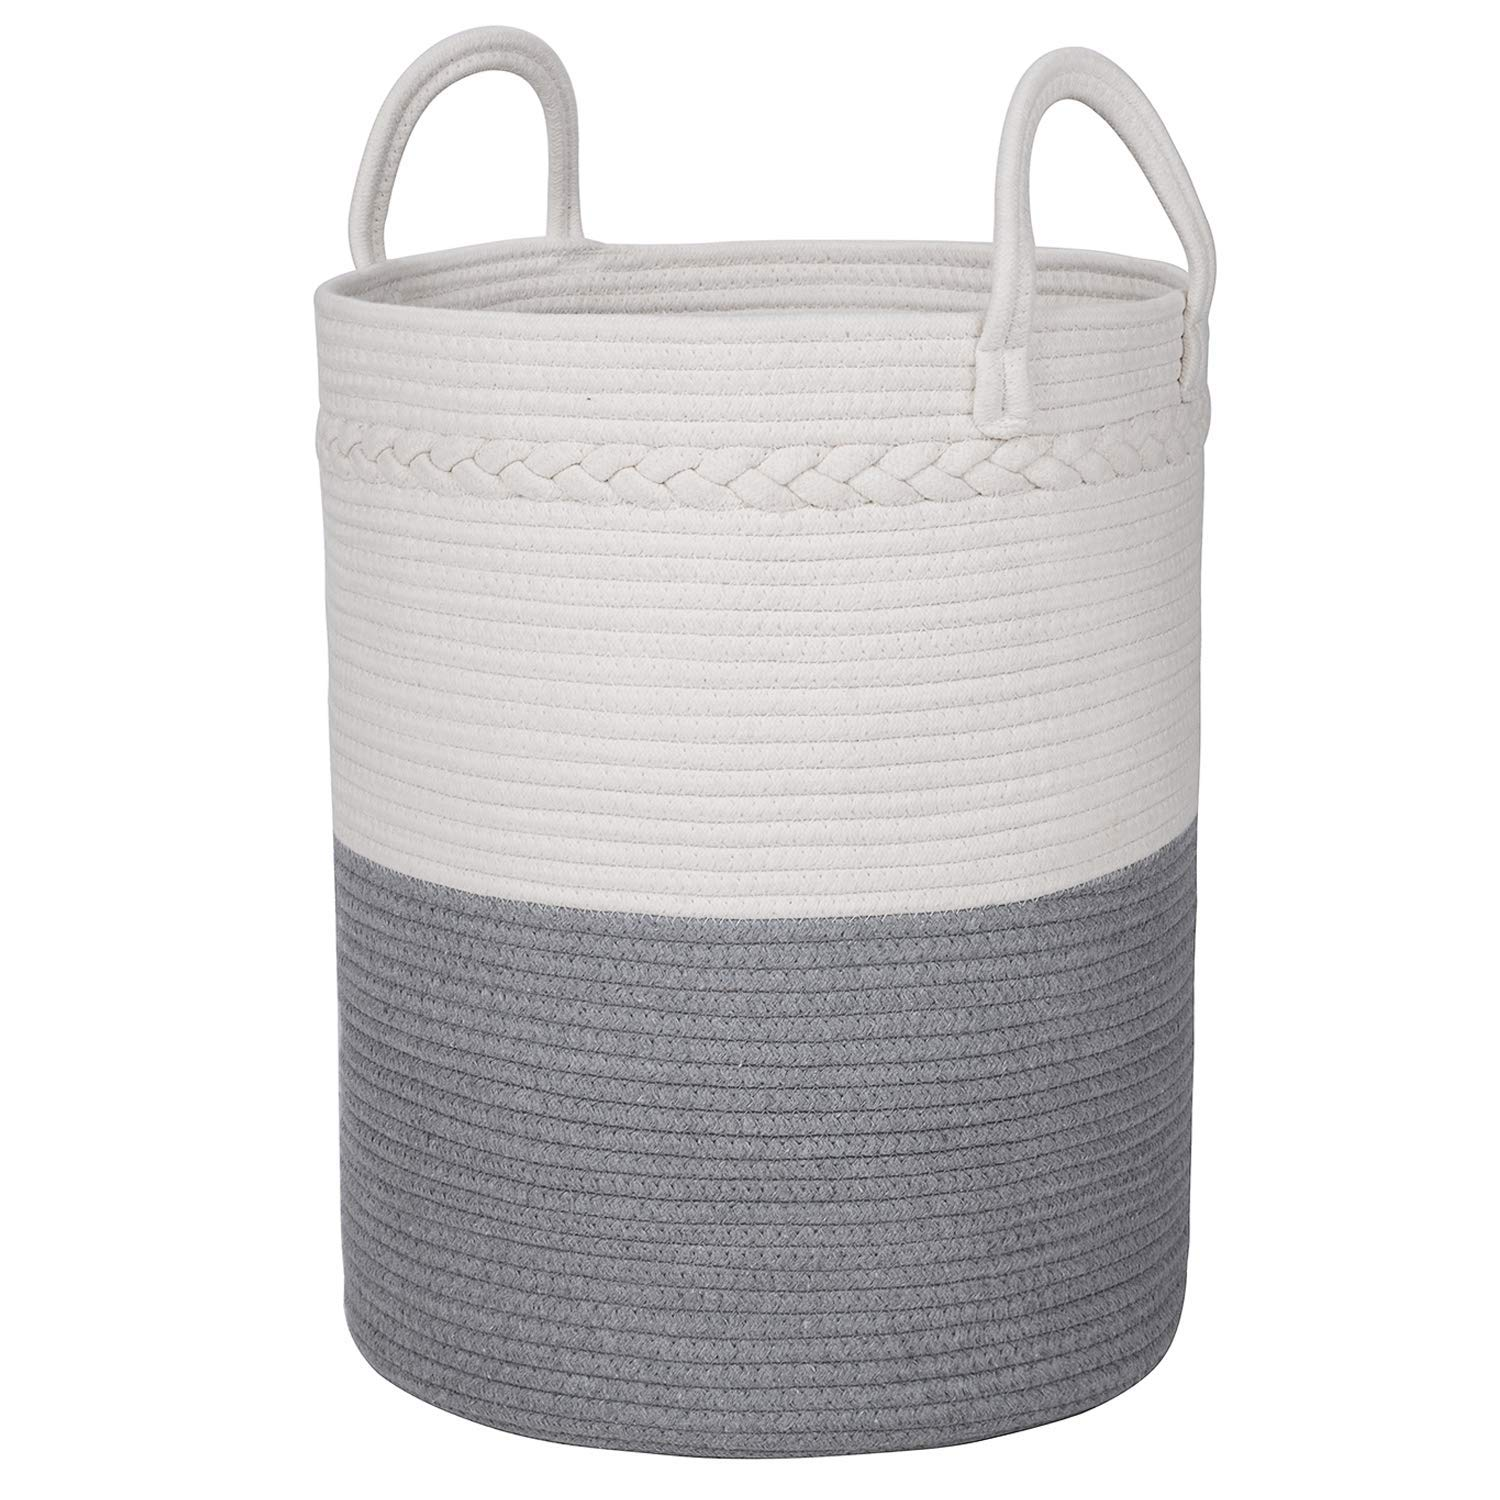 LHMSTORE Extra Large XXXL Woven Storage Basket, 18'' x 15'' Decorative Basket and Laundry Hamper for Clothes Sofa Cloth, Throws, Blankets Pillows, Towels, Toys or Nursery, Cotton Rope Organizer by LHMSTORE